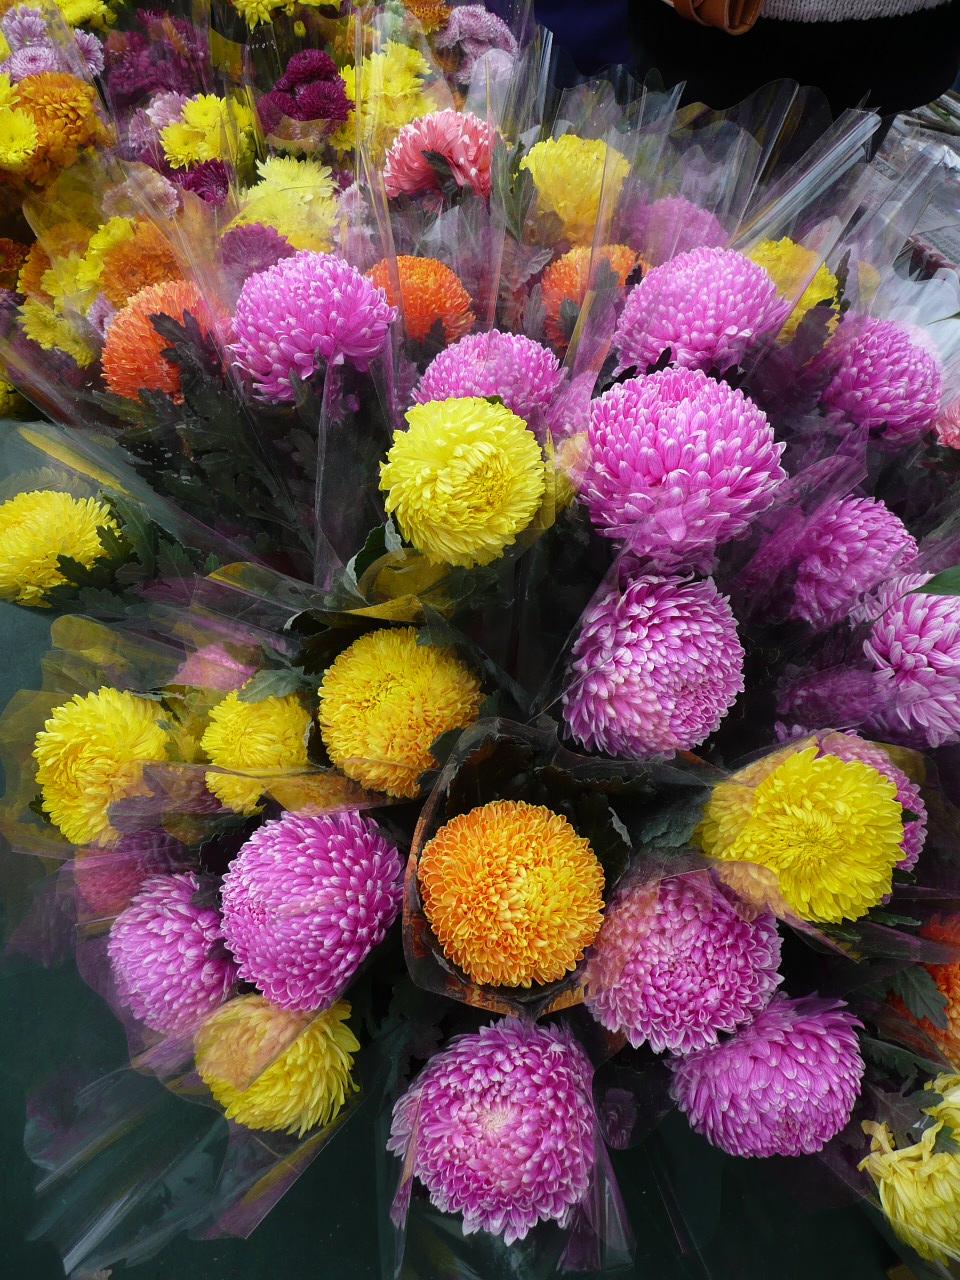 Webs of significance an obligatory chinese new year blog post flowers for sale at the chinese new year flower market in victoria park izmirmasajfo